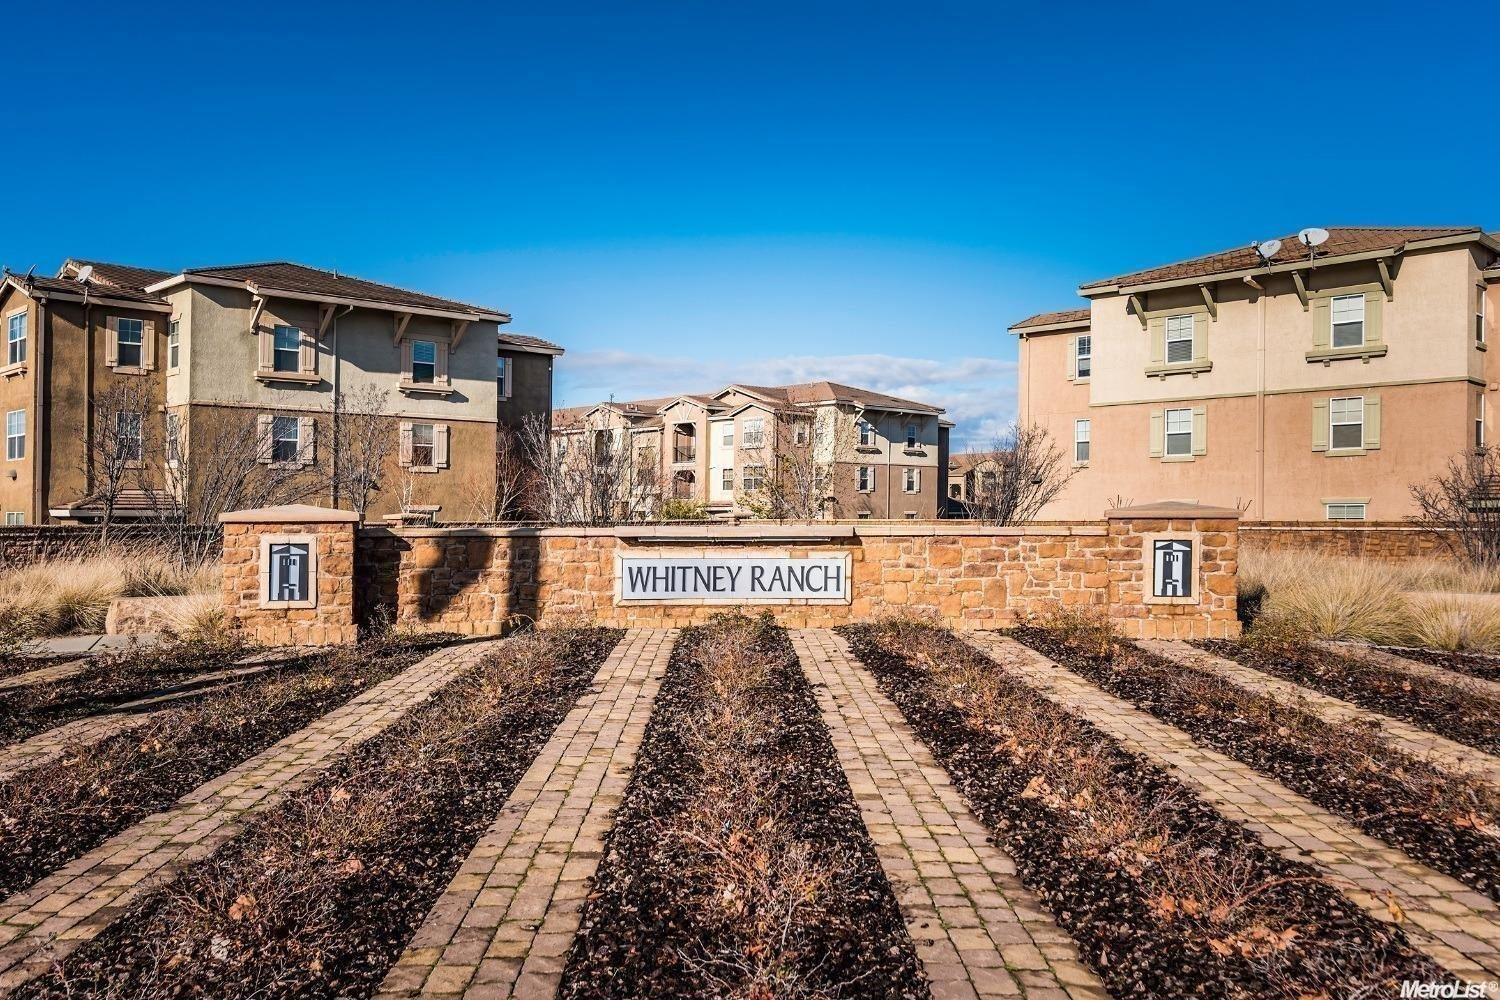 Photo of 1221 Whitney Ranch Parkway #1136, Rocklin, CA 95765 (MLS # 221133716)